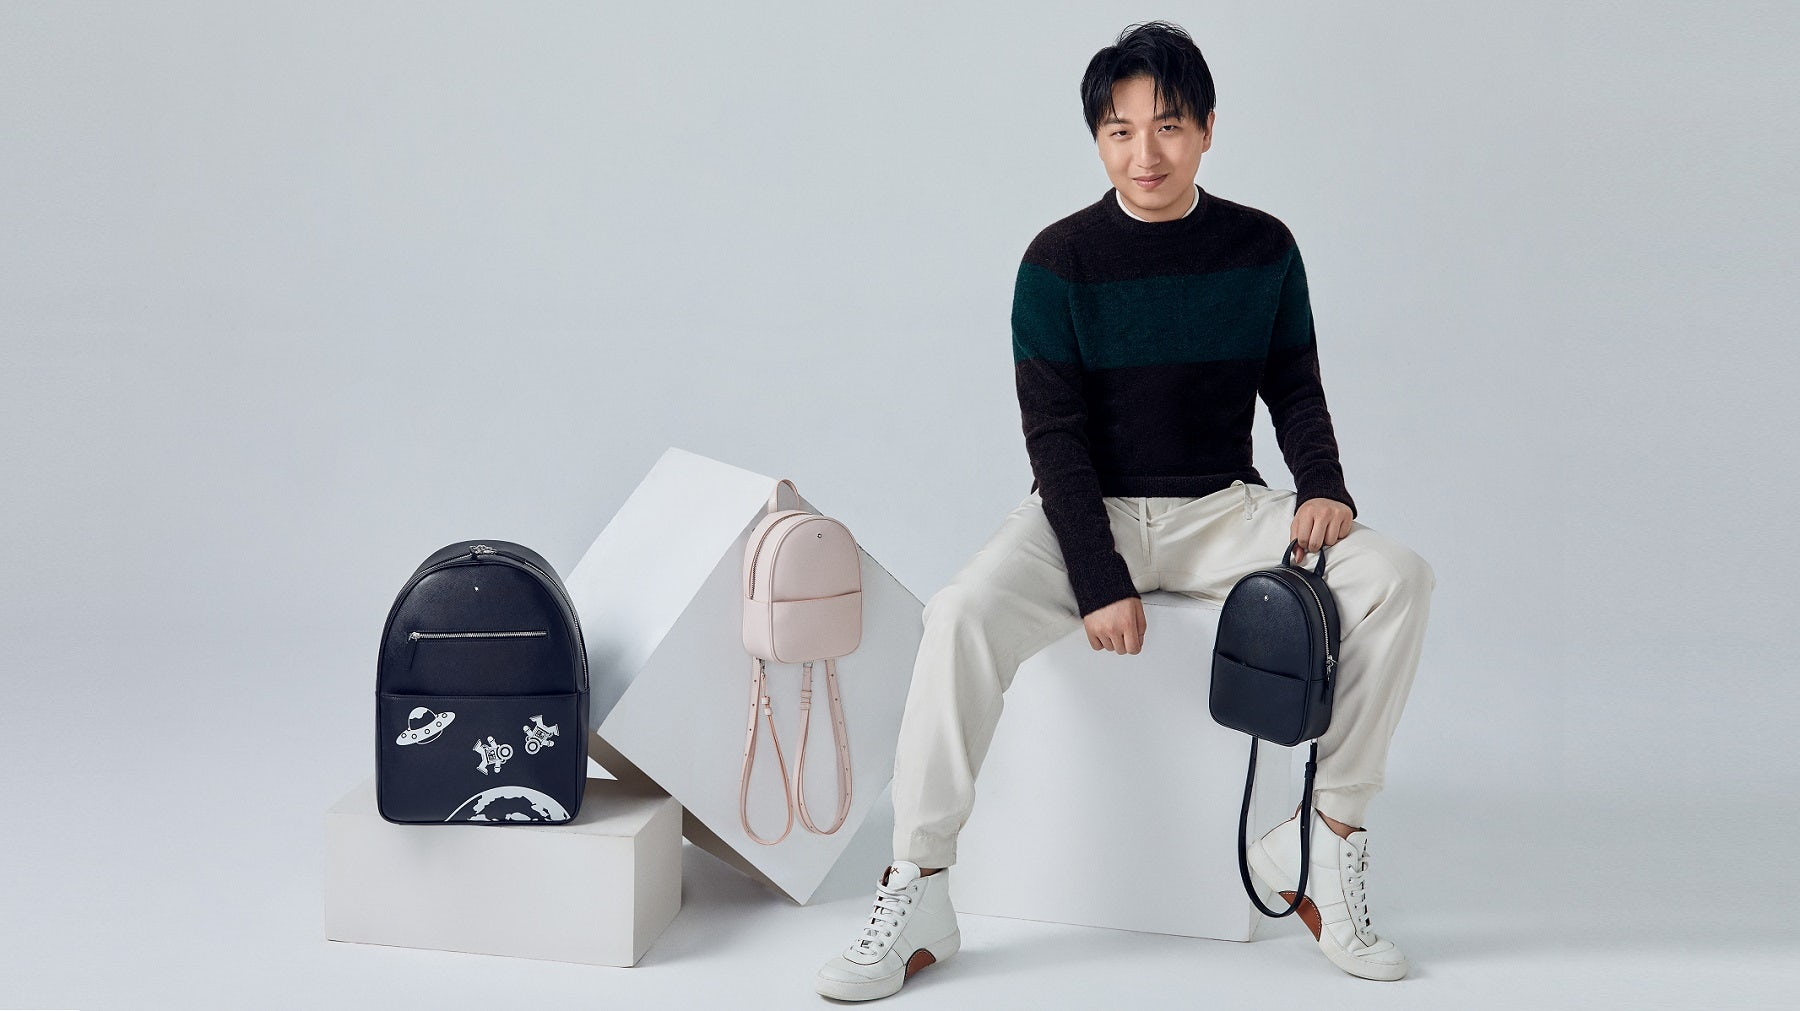 A first look at Mr. Bags' collaboration with Montblanc | Source: Mr. Bags